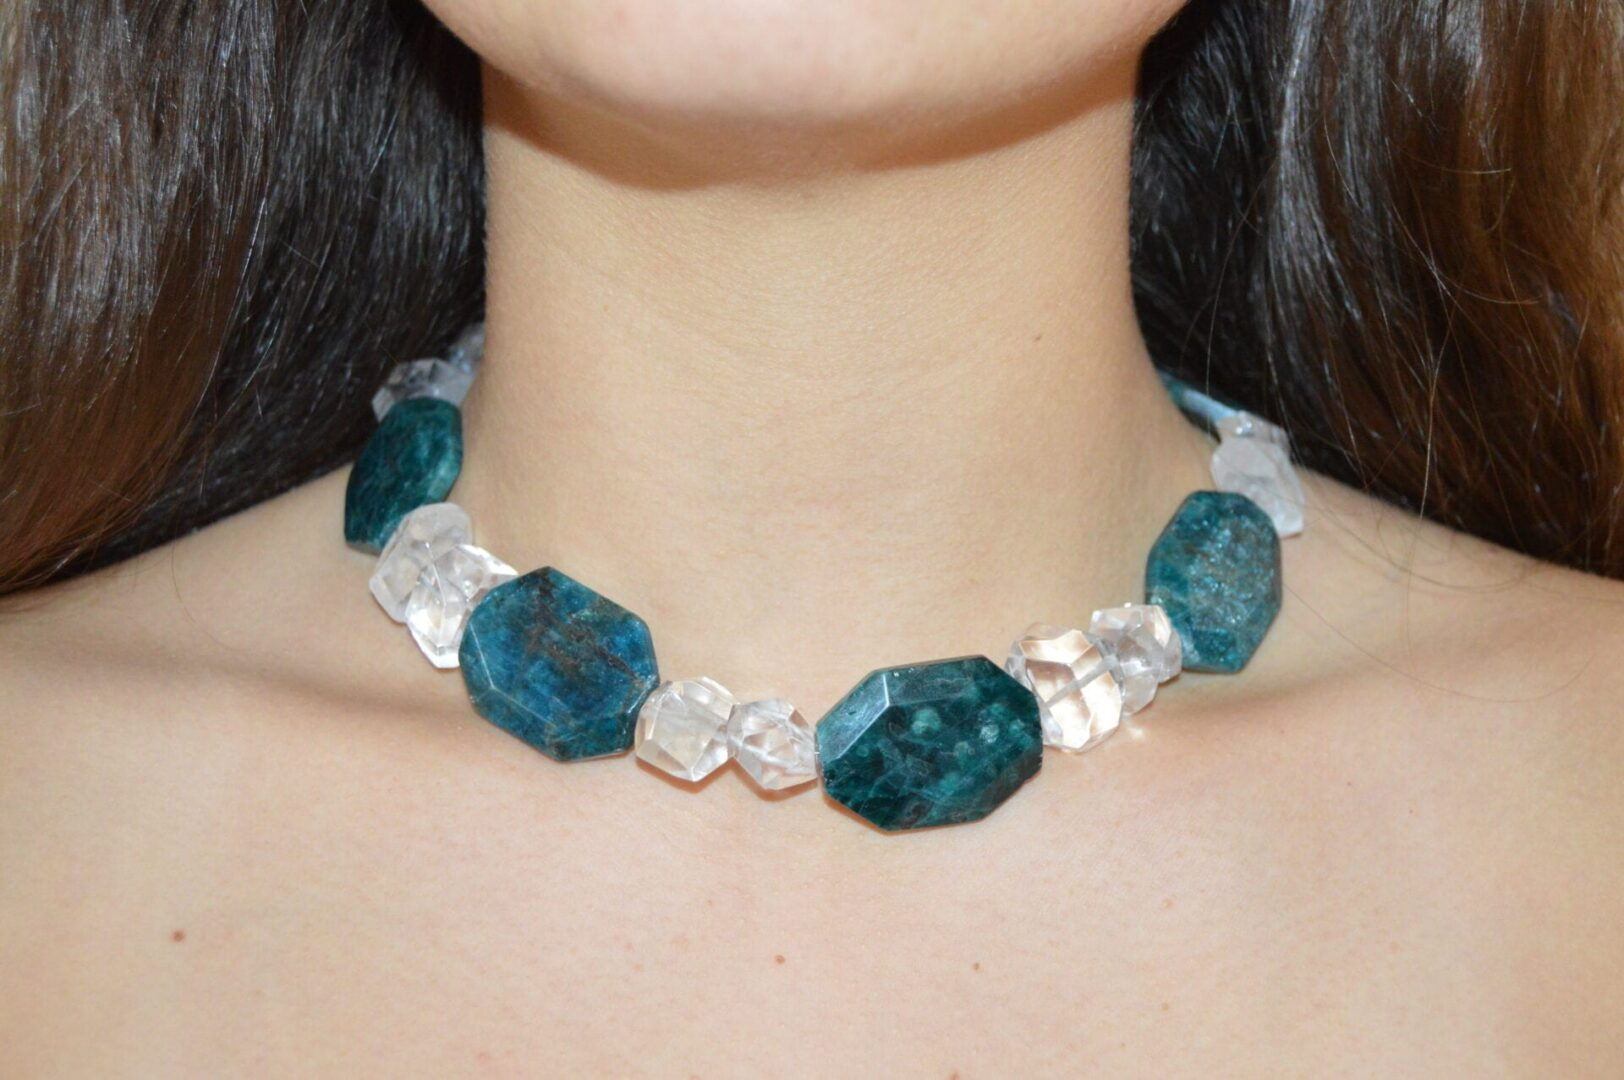 A blue and white stoned necklace